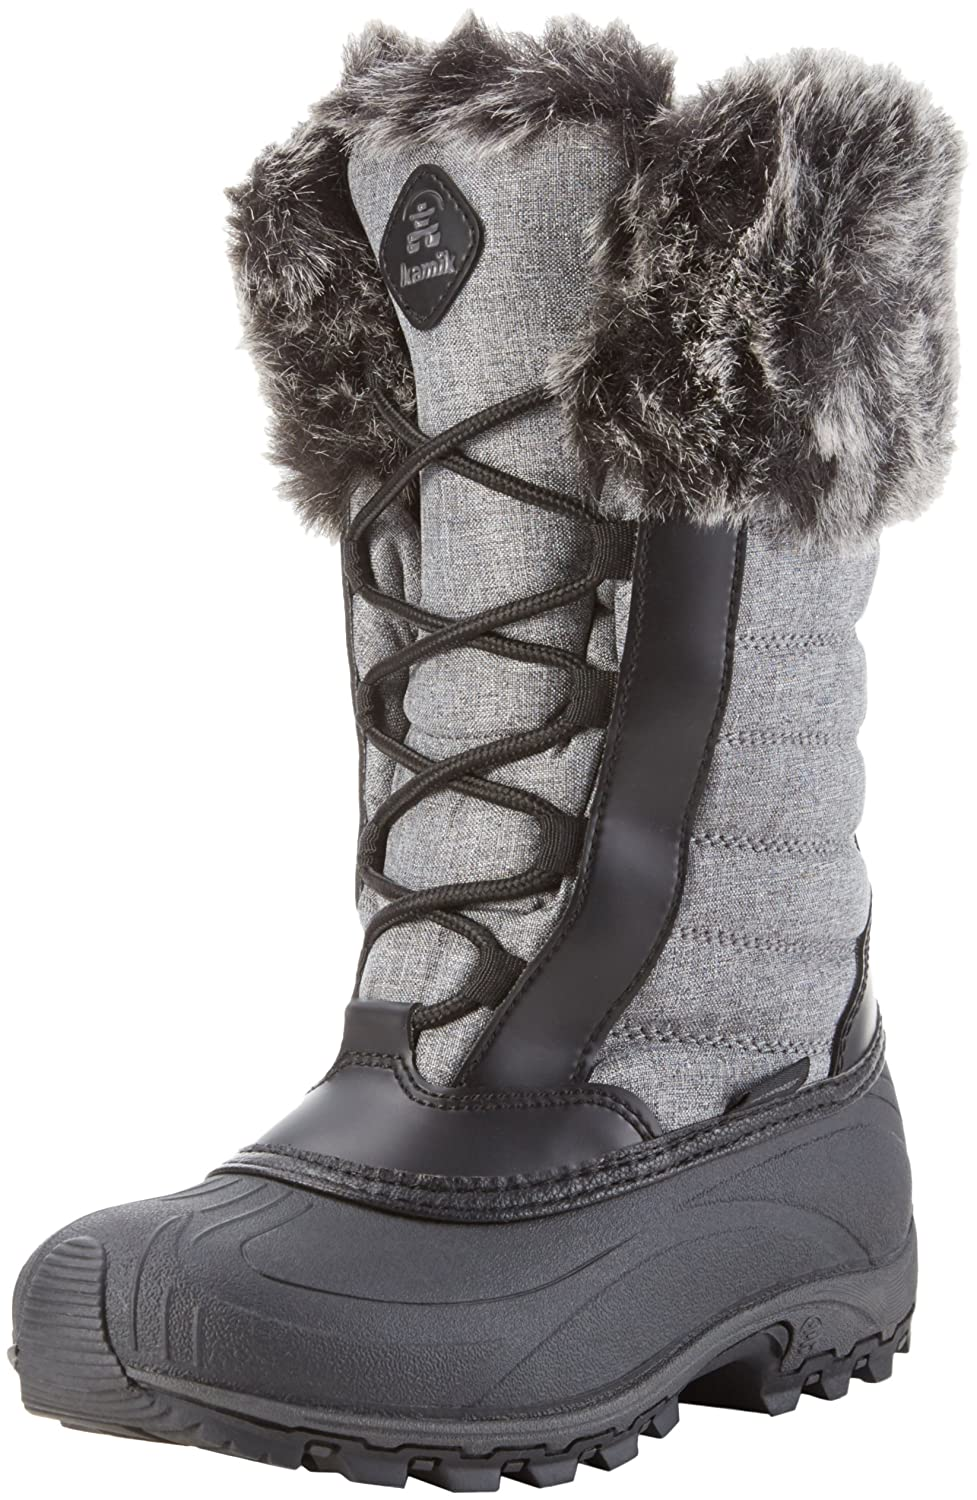 Kamik Women's Haley Snow Boot B0198WT10A 6 M US|Charcoal